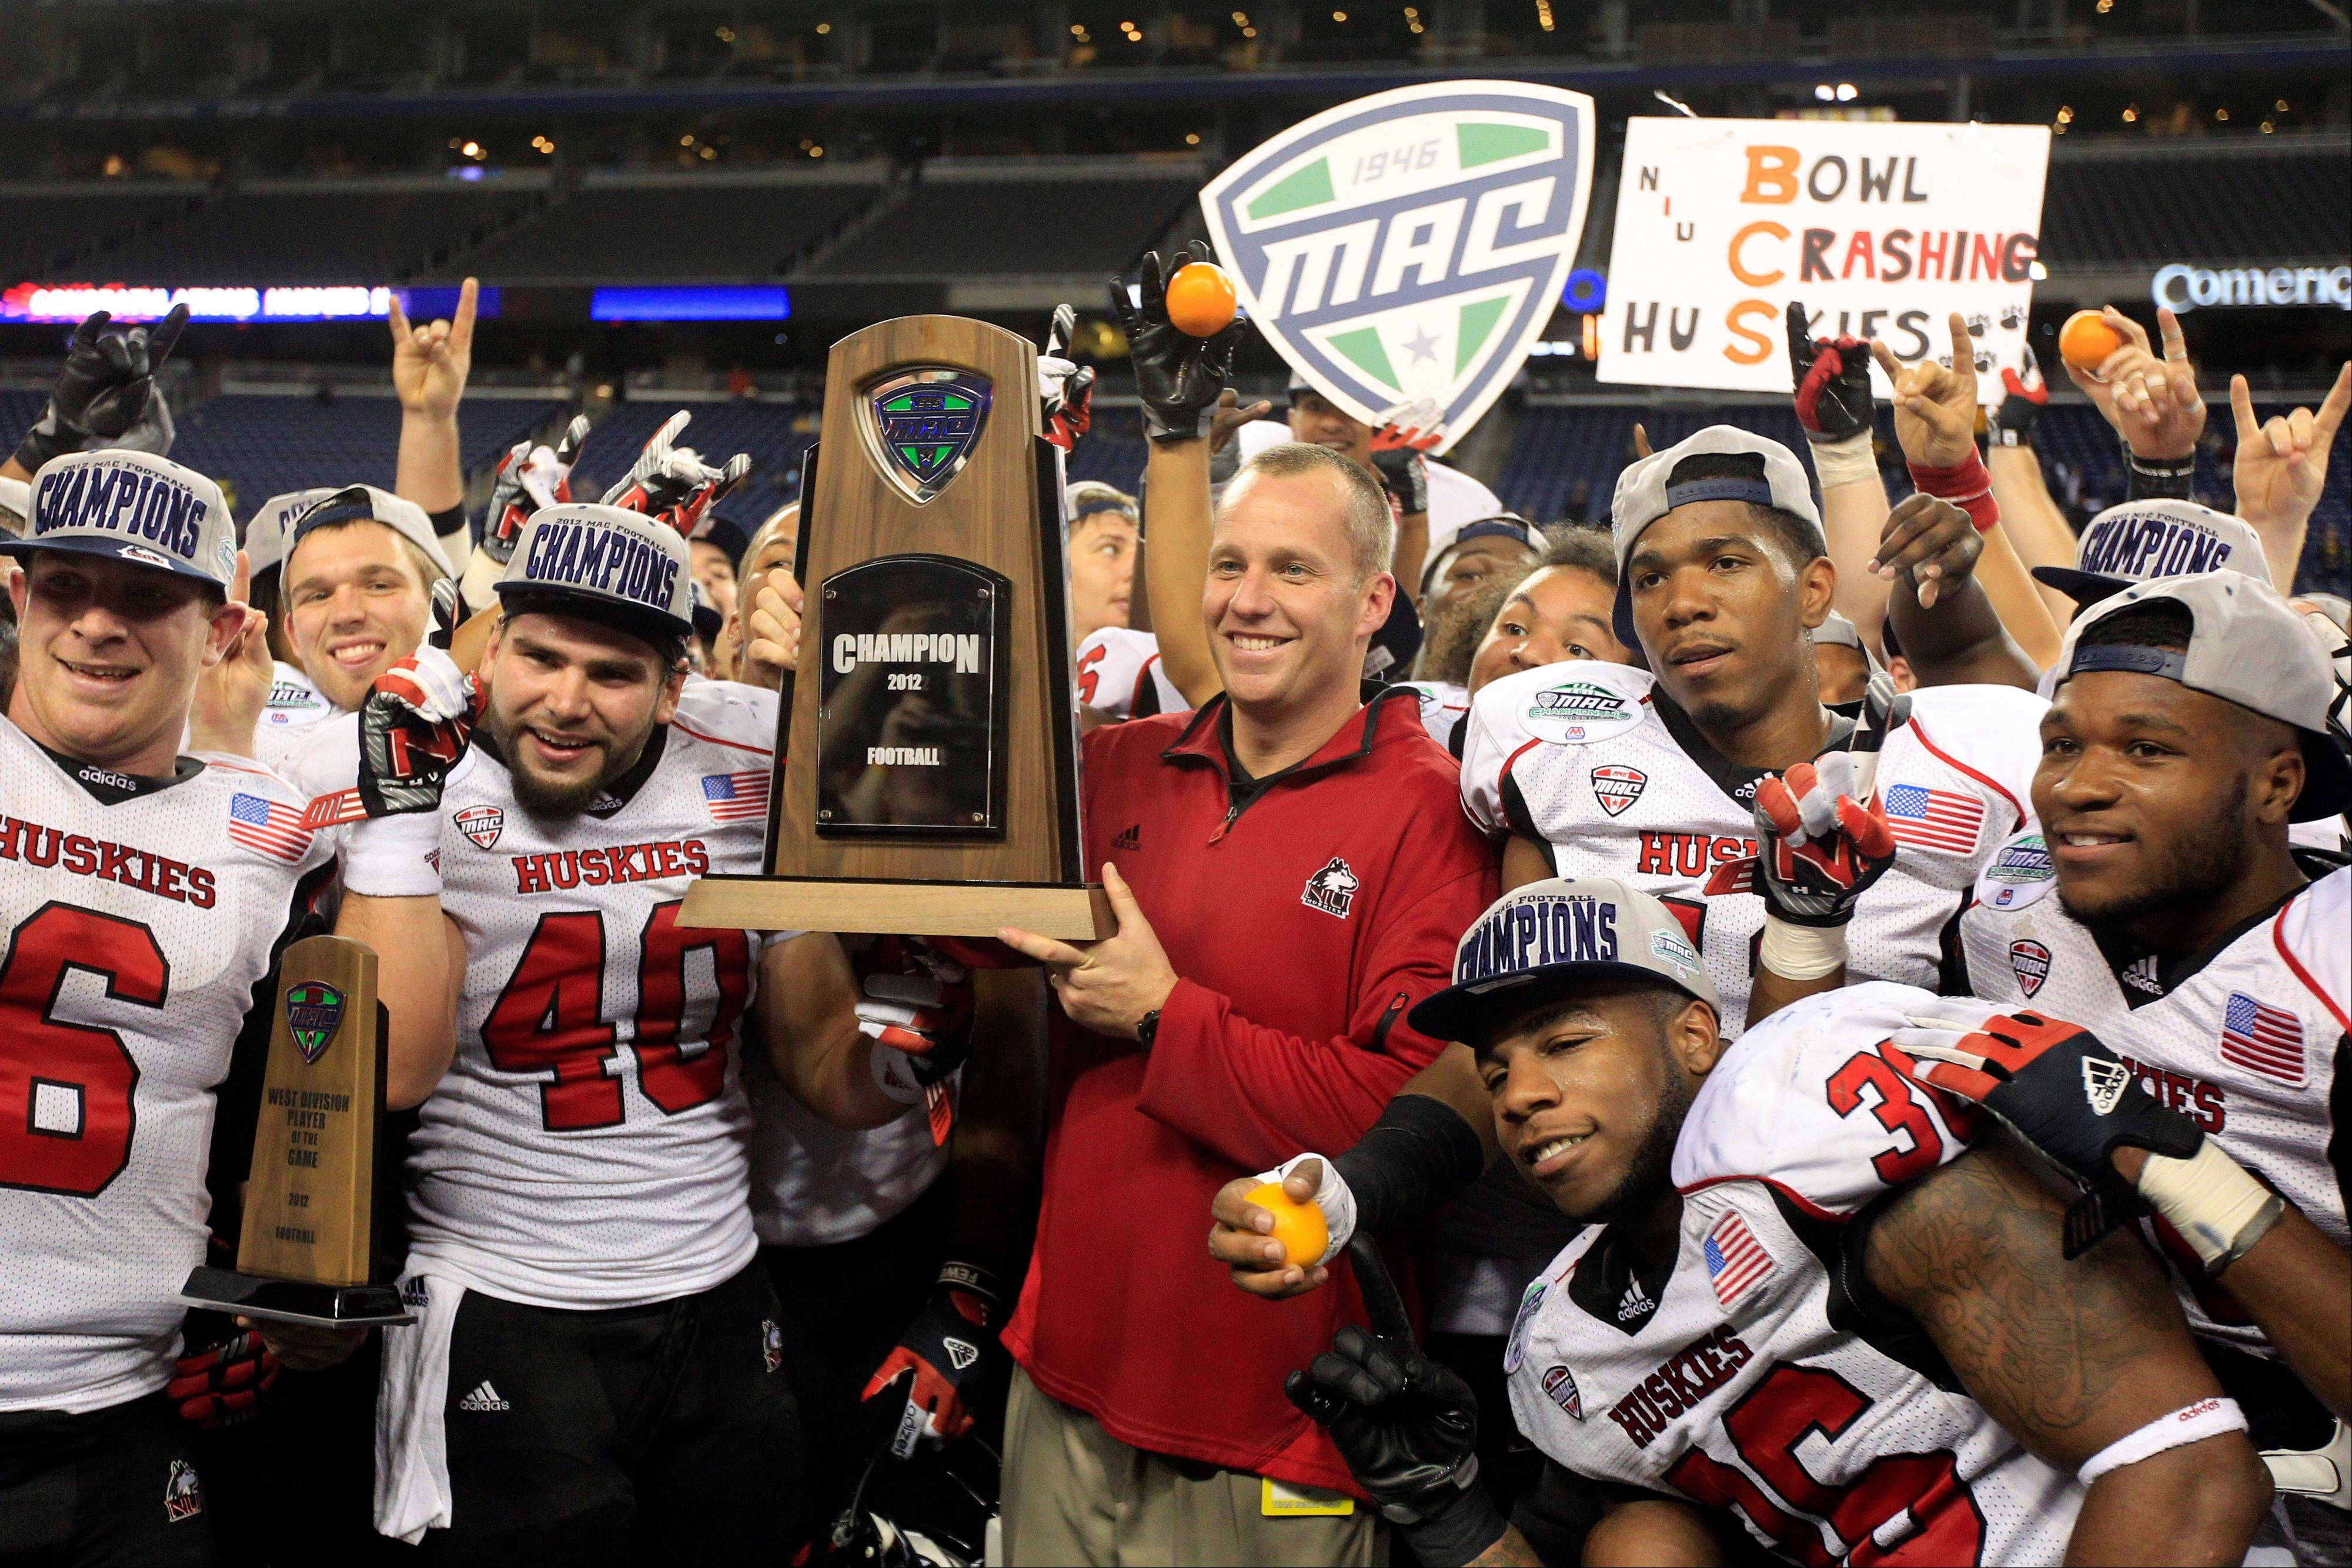 Images: Northern Illinois wins the MAC title